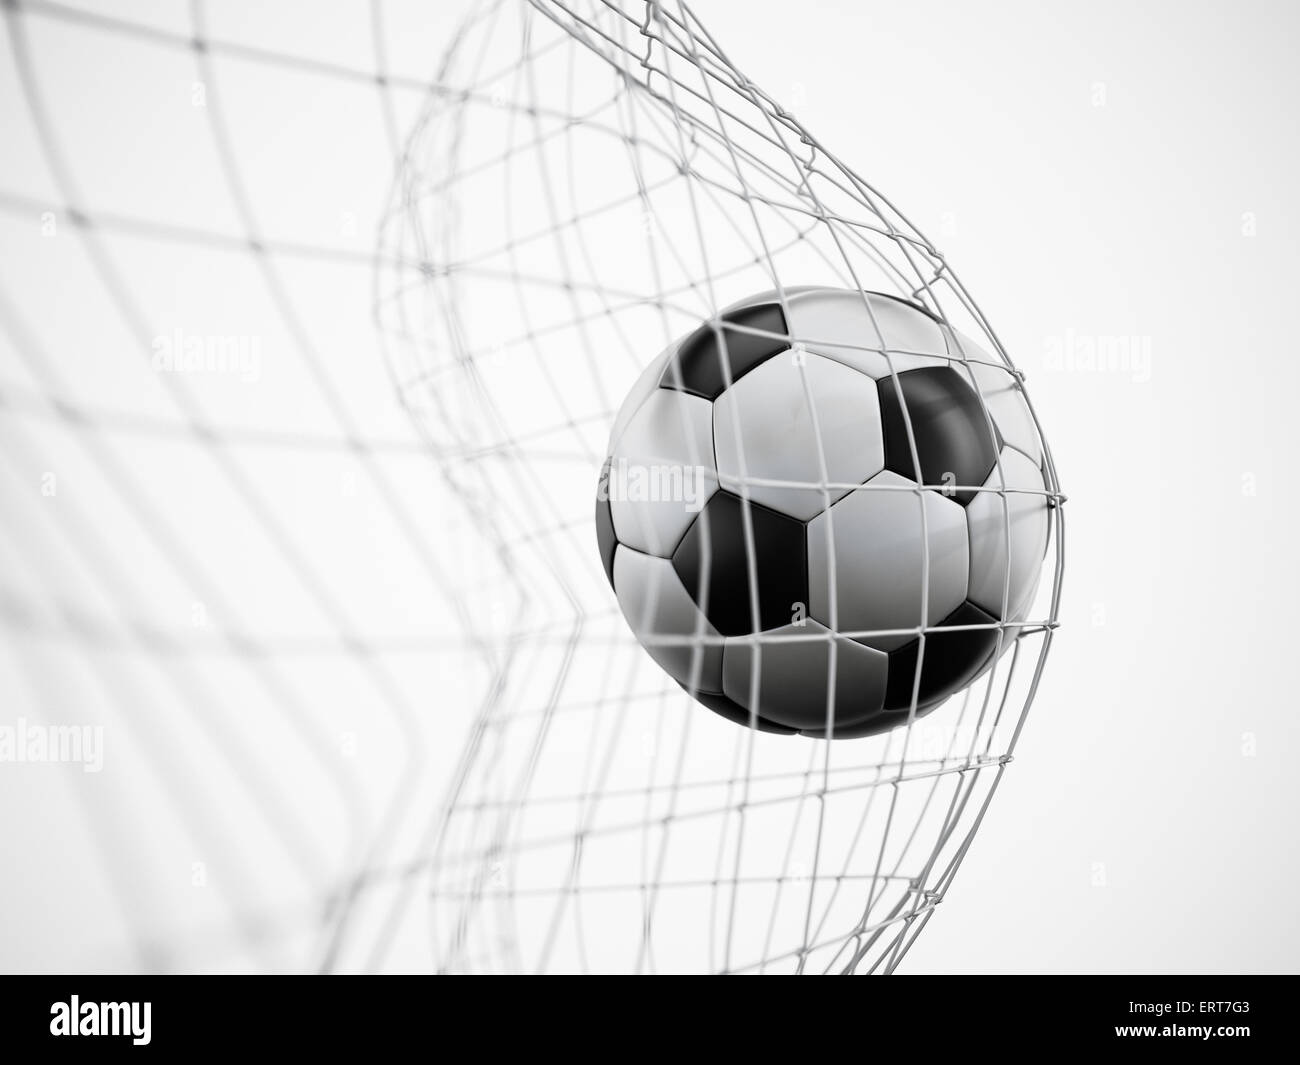 Ballon de soccer ou de football sur le net isolé sur fond blanc Photo Stock